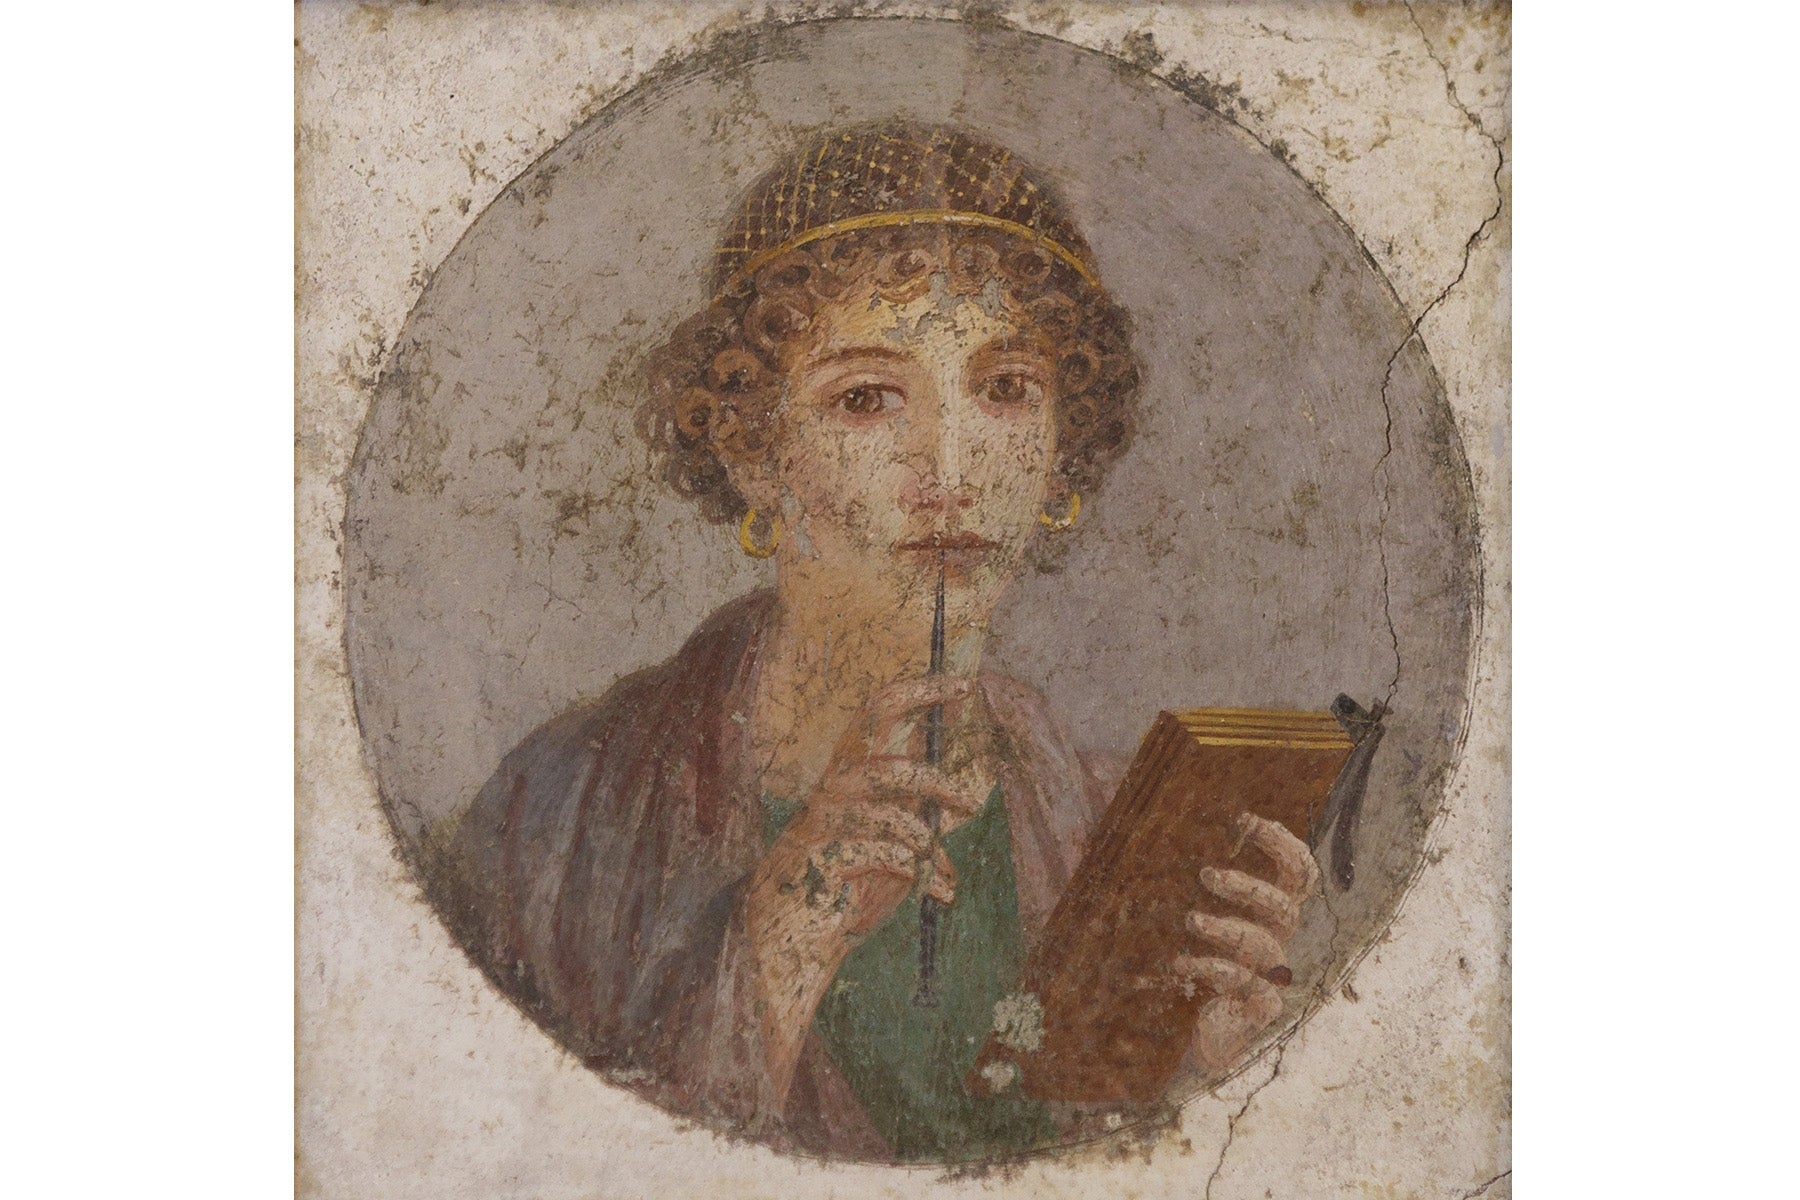 Sappho of Lesbos | Queer Women You Should Know About